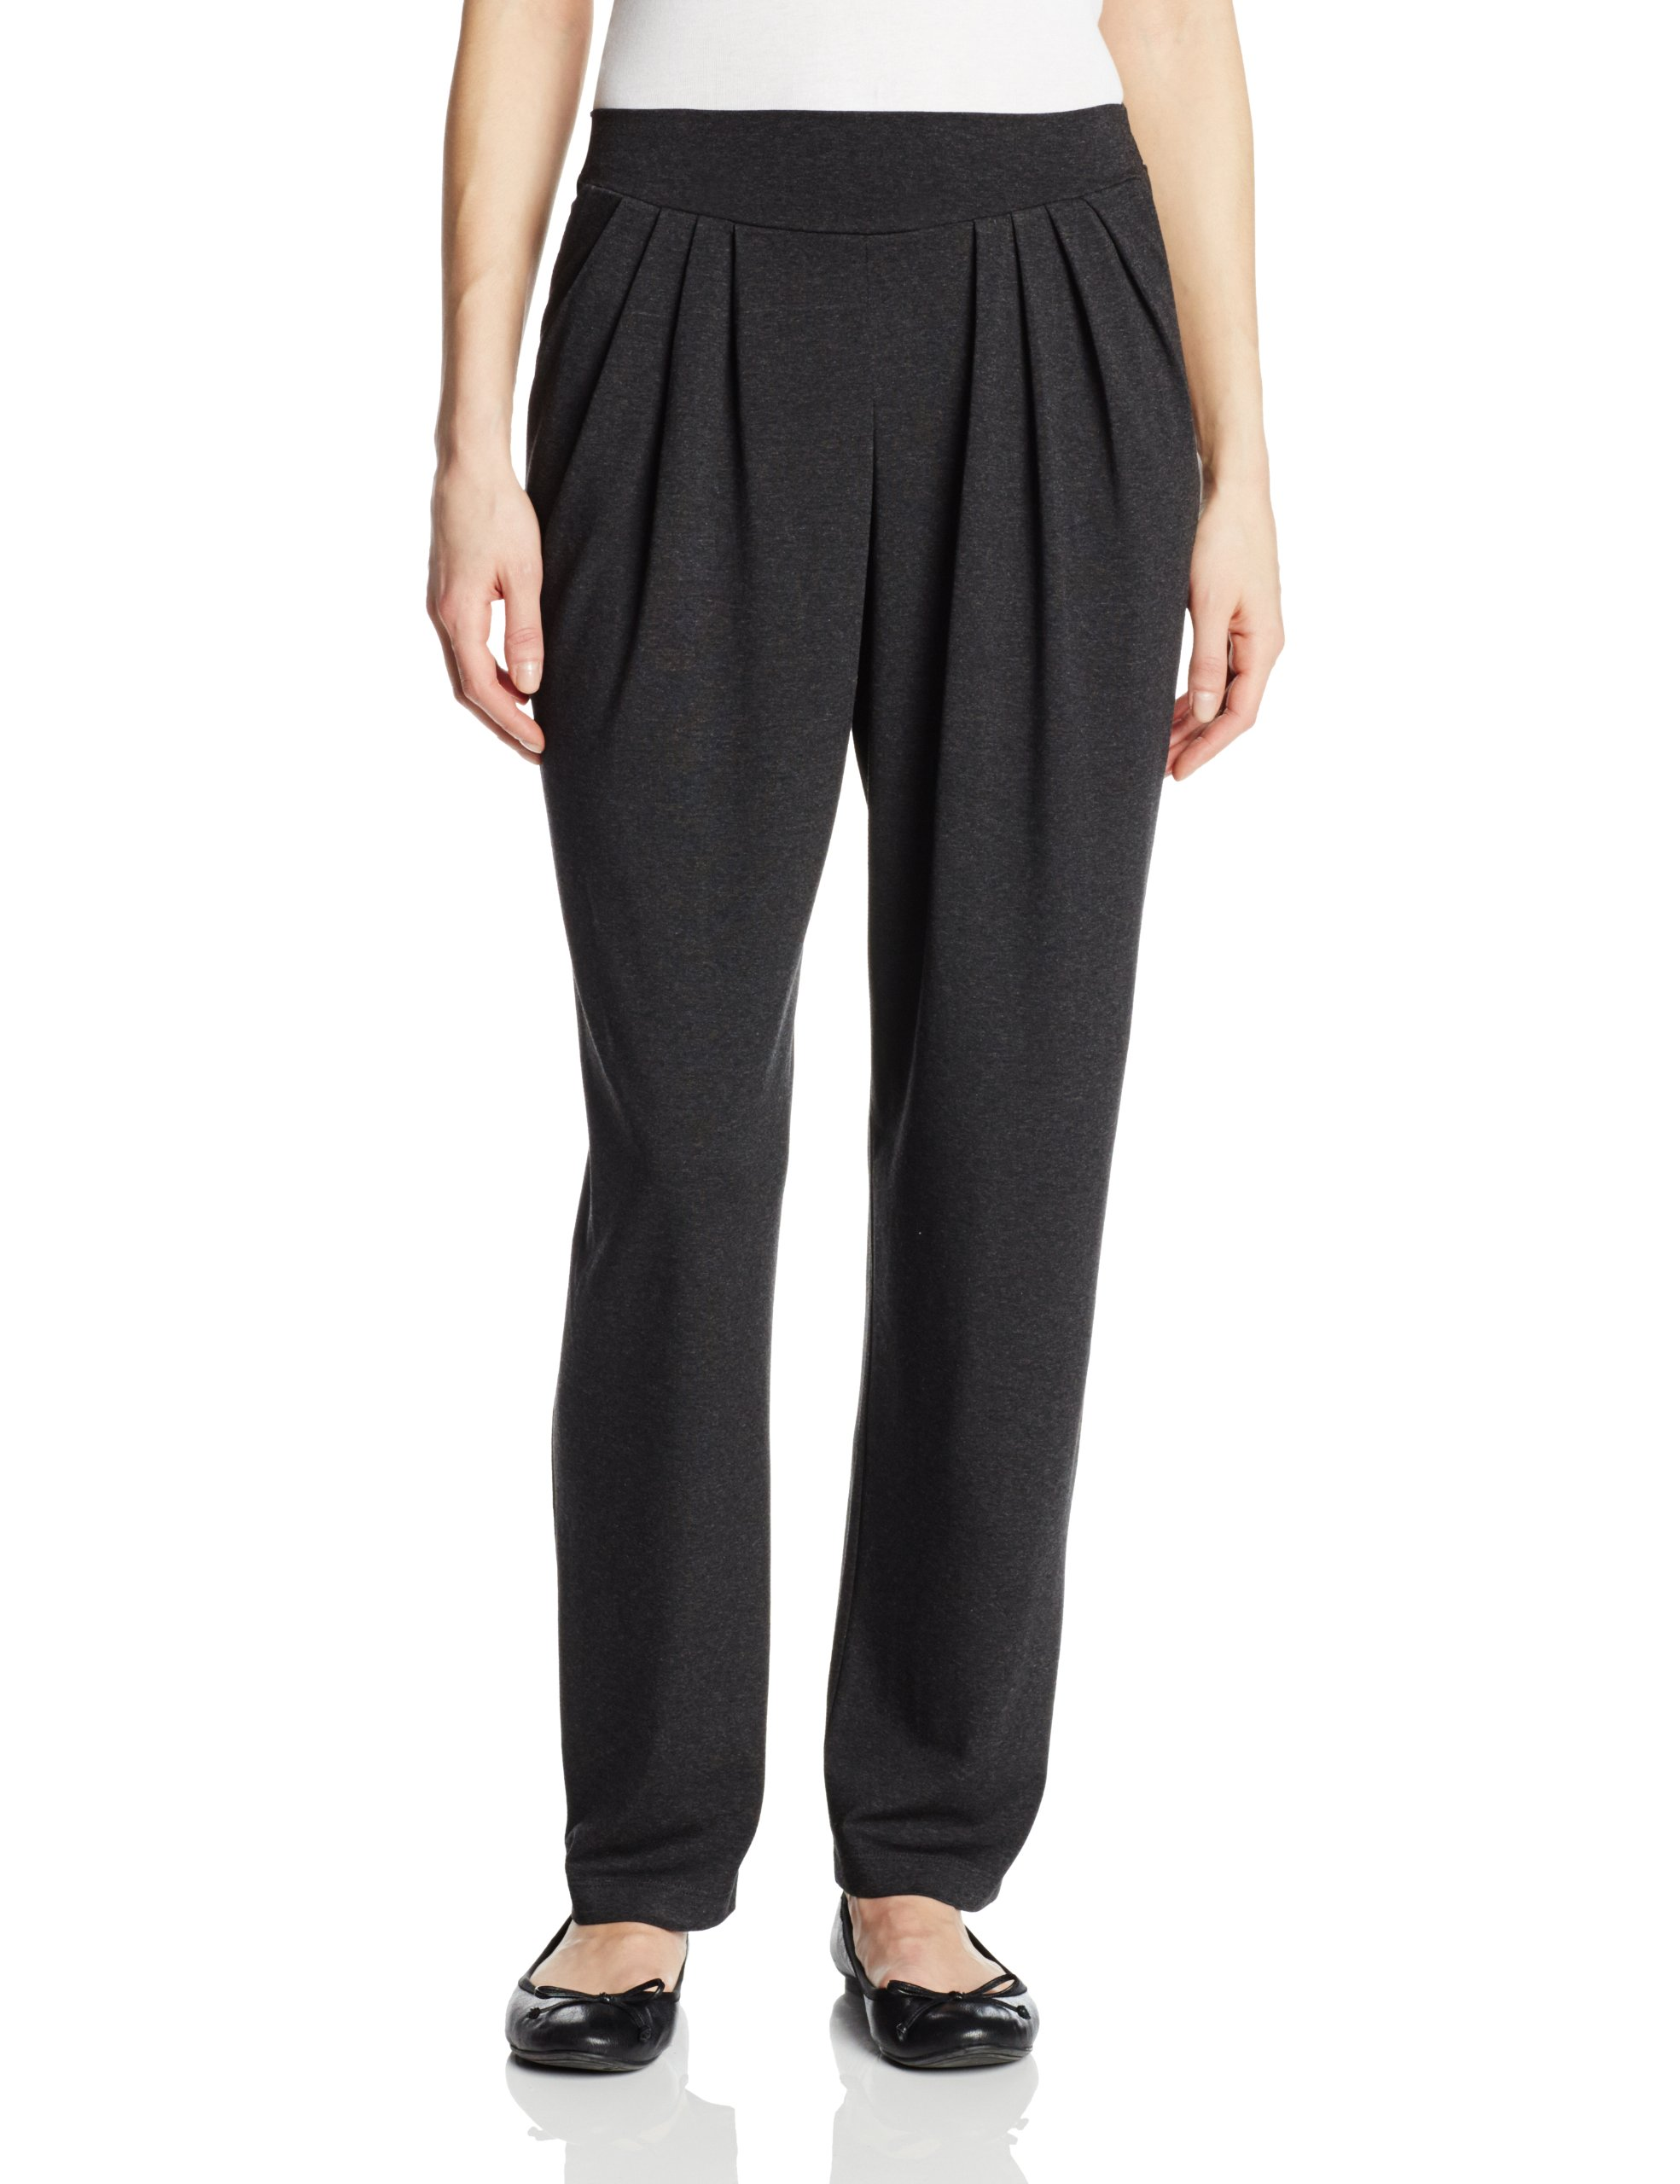 Only Hearts Women's So Fine Pleated Trouser, Carbon, Small